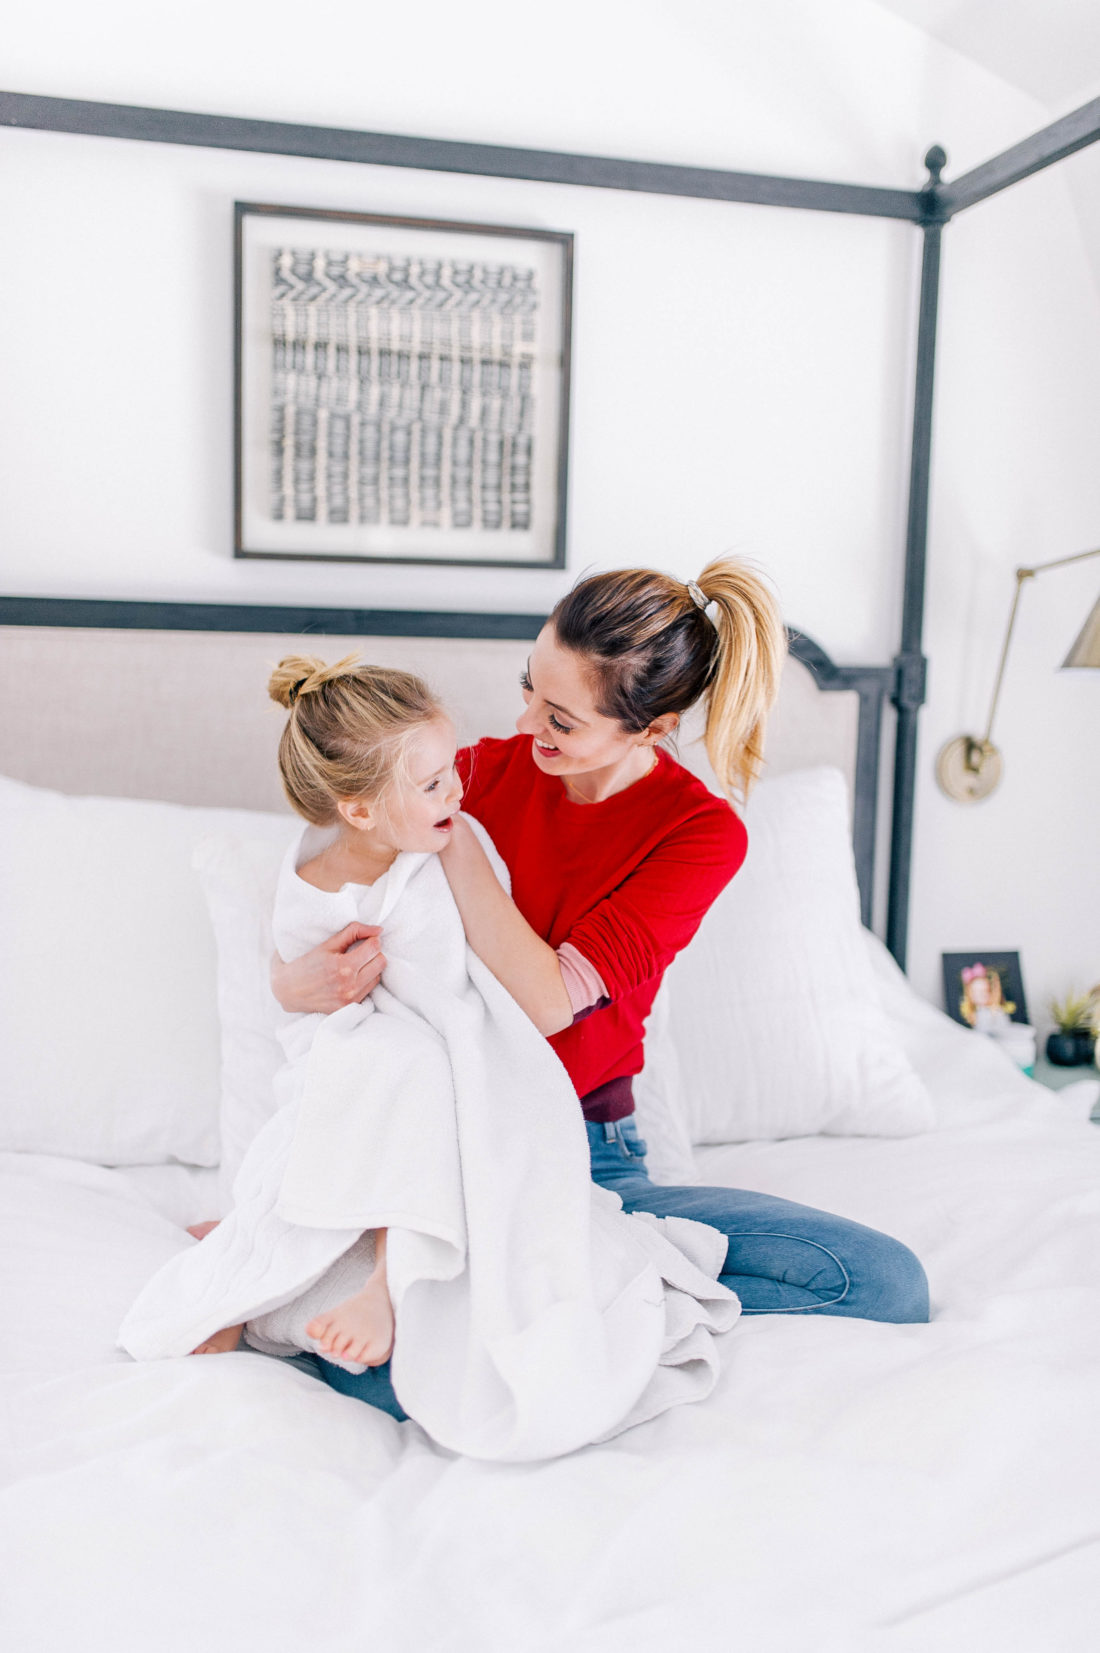 Eva Amurri Martino wraps daughter Marlowe in a white towel in the bedroom of her Connecticut home